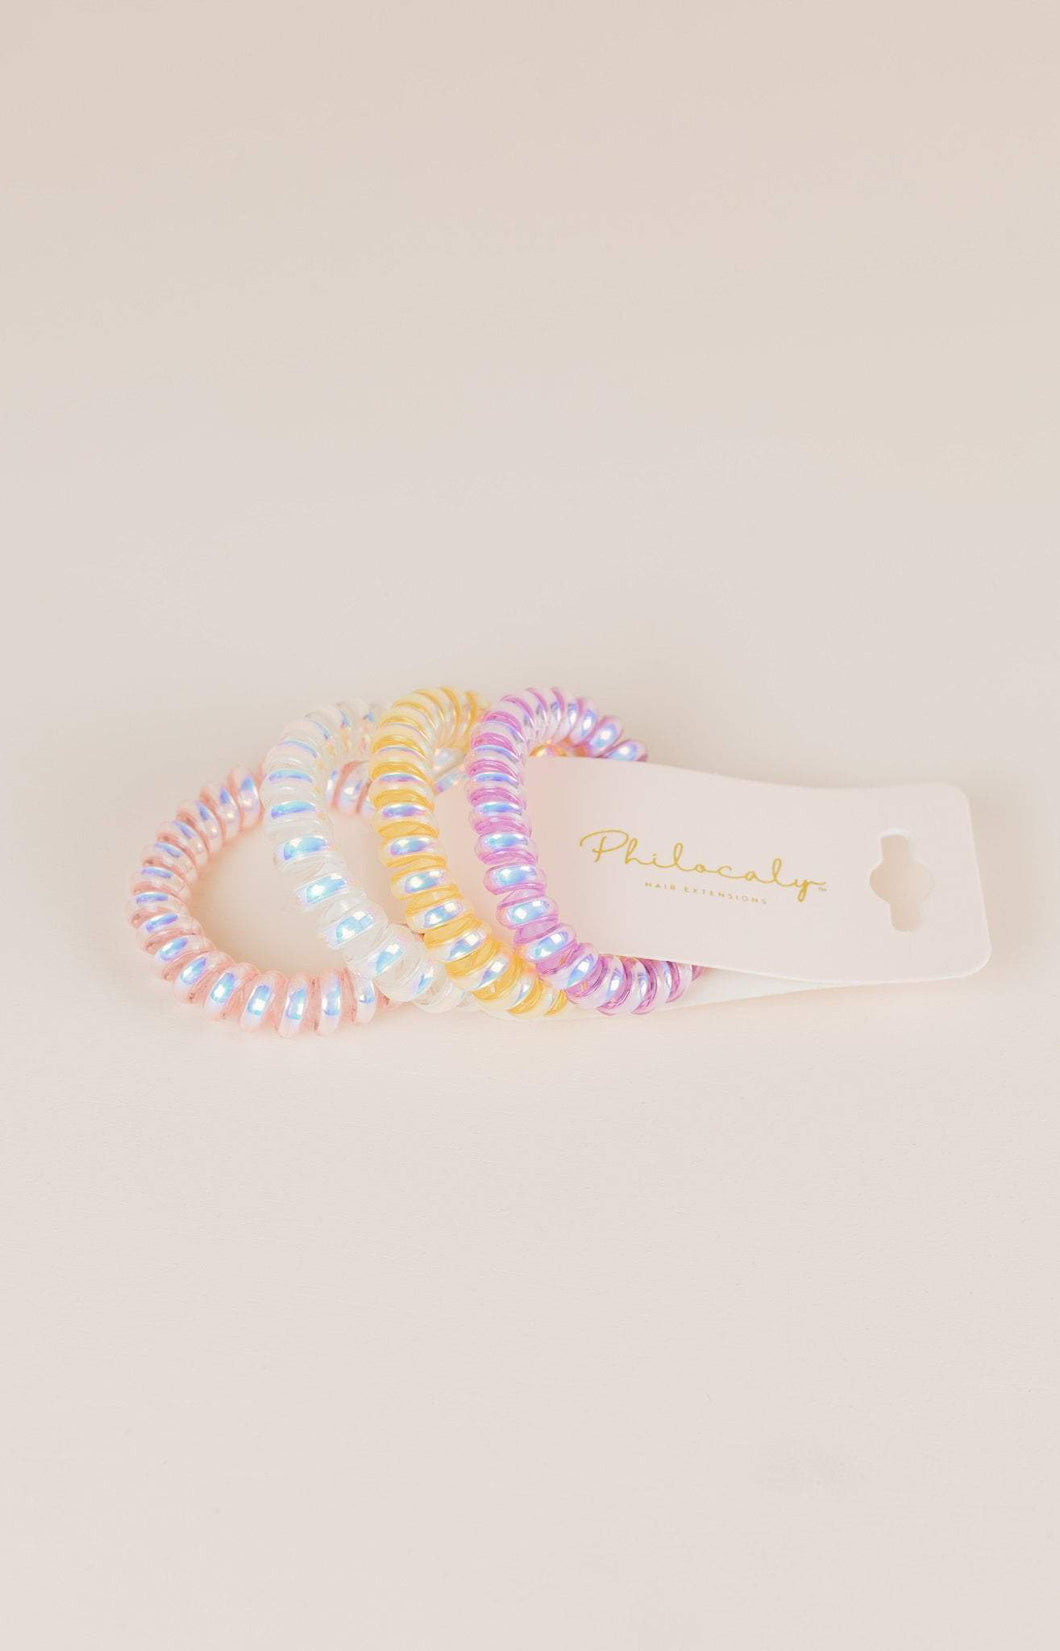 Philocaly Coiled Hair Tie Set (Multiple Colours)